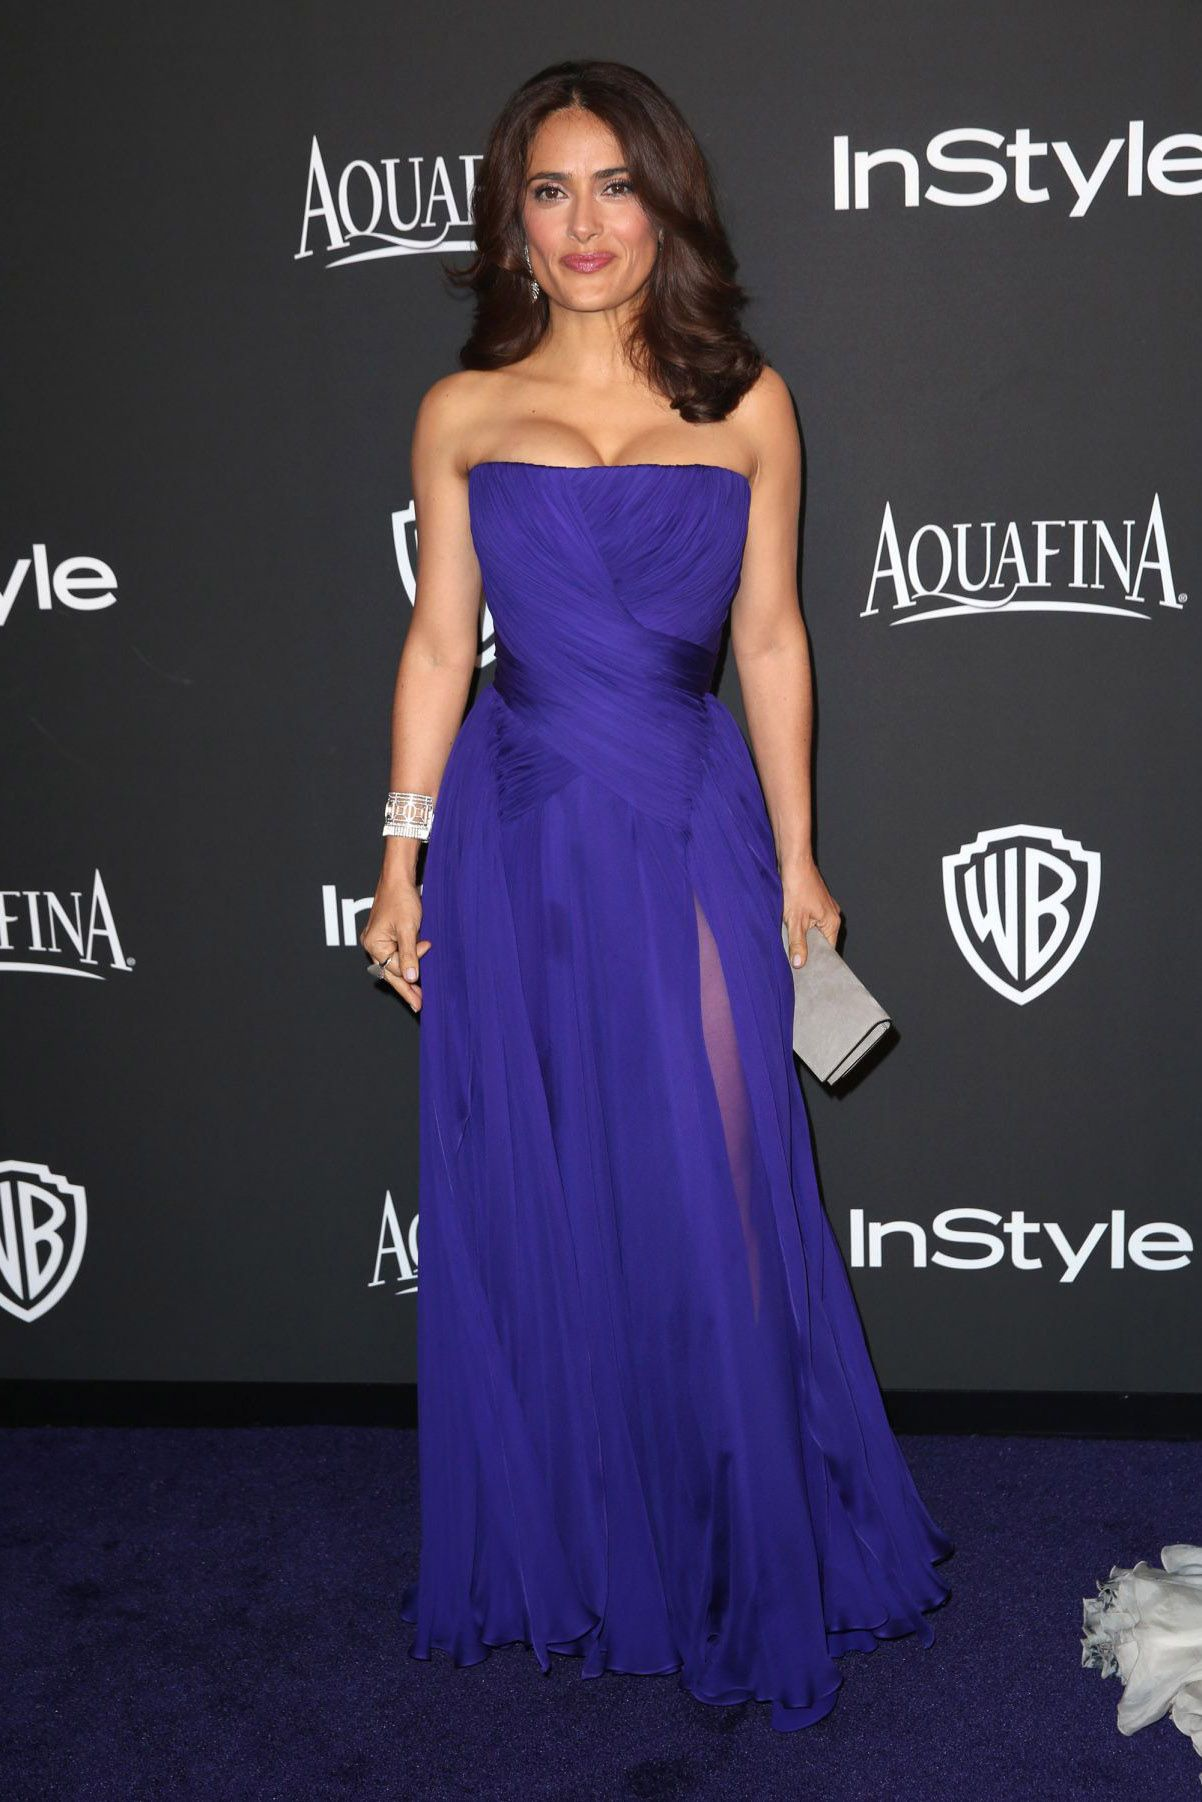 Salma hayek royal blue evening gown instyle and warner bros